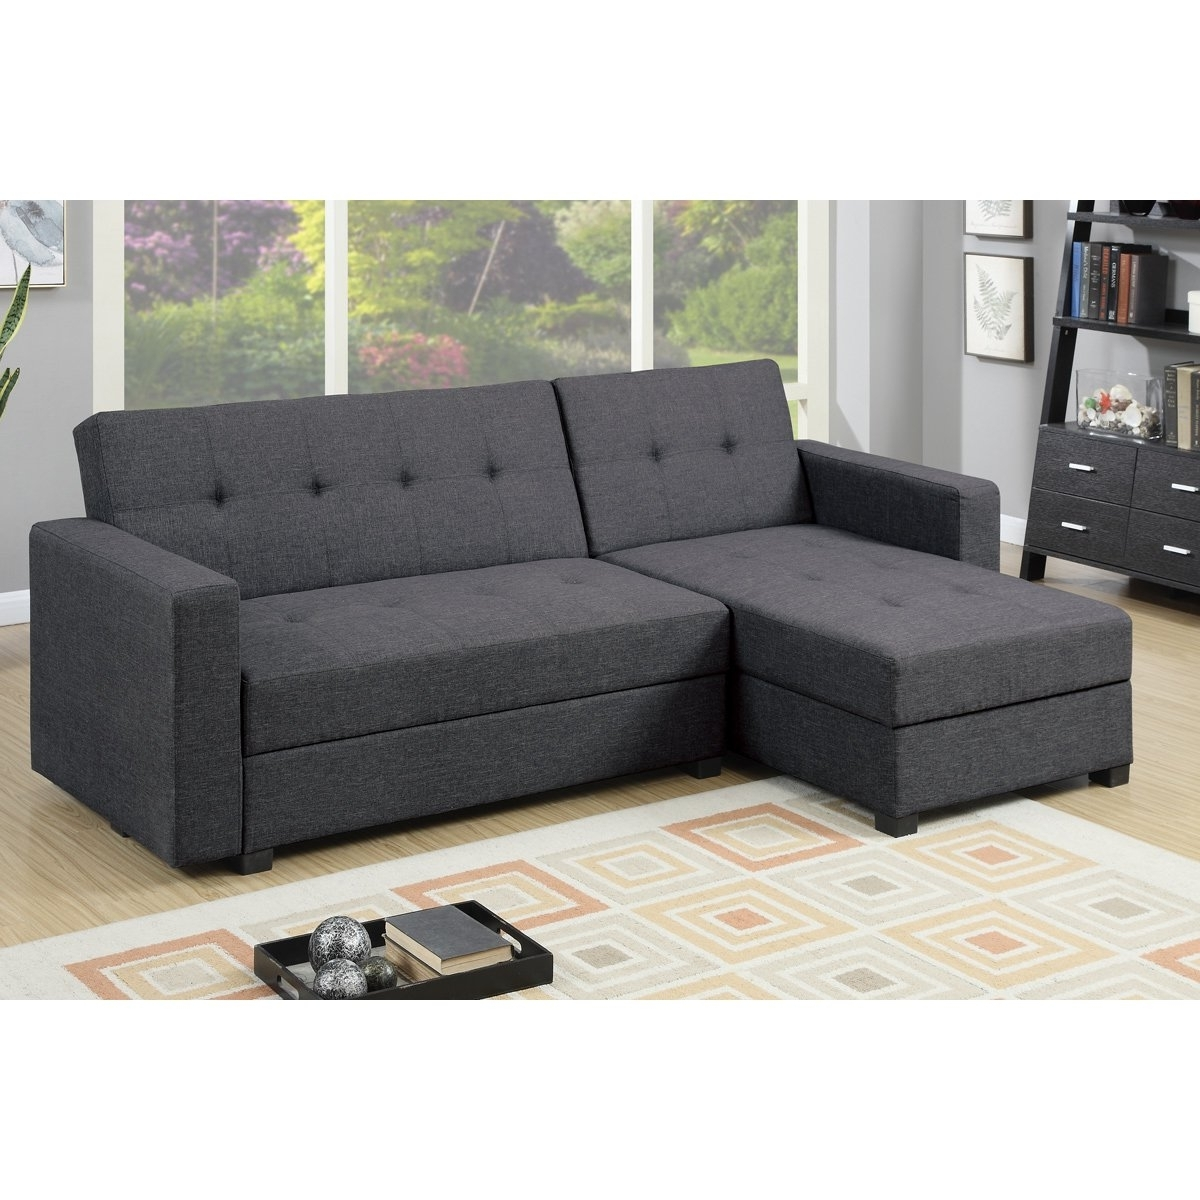 Trendy Sofas With Reversible Chaise Lounge Throughout Furniture: Reversible Chaise Sectional For Comfortable Living Room (View 14 of 15)